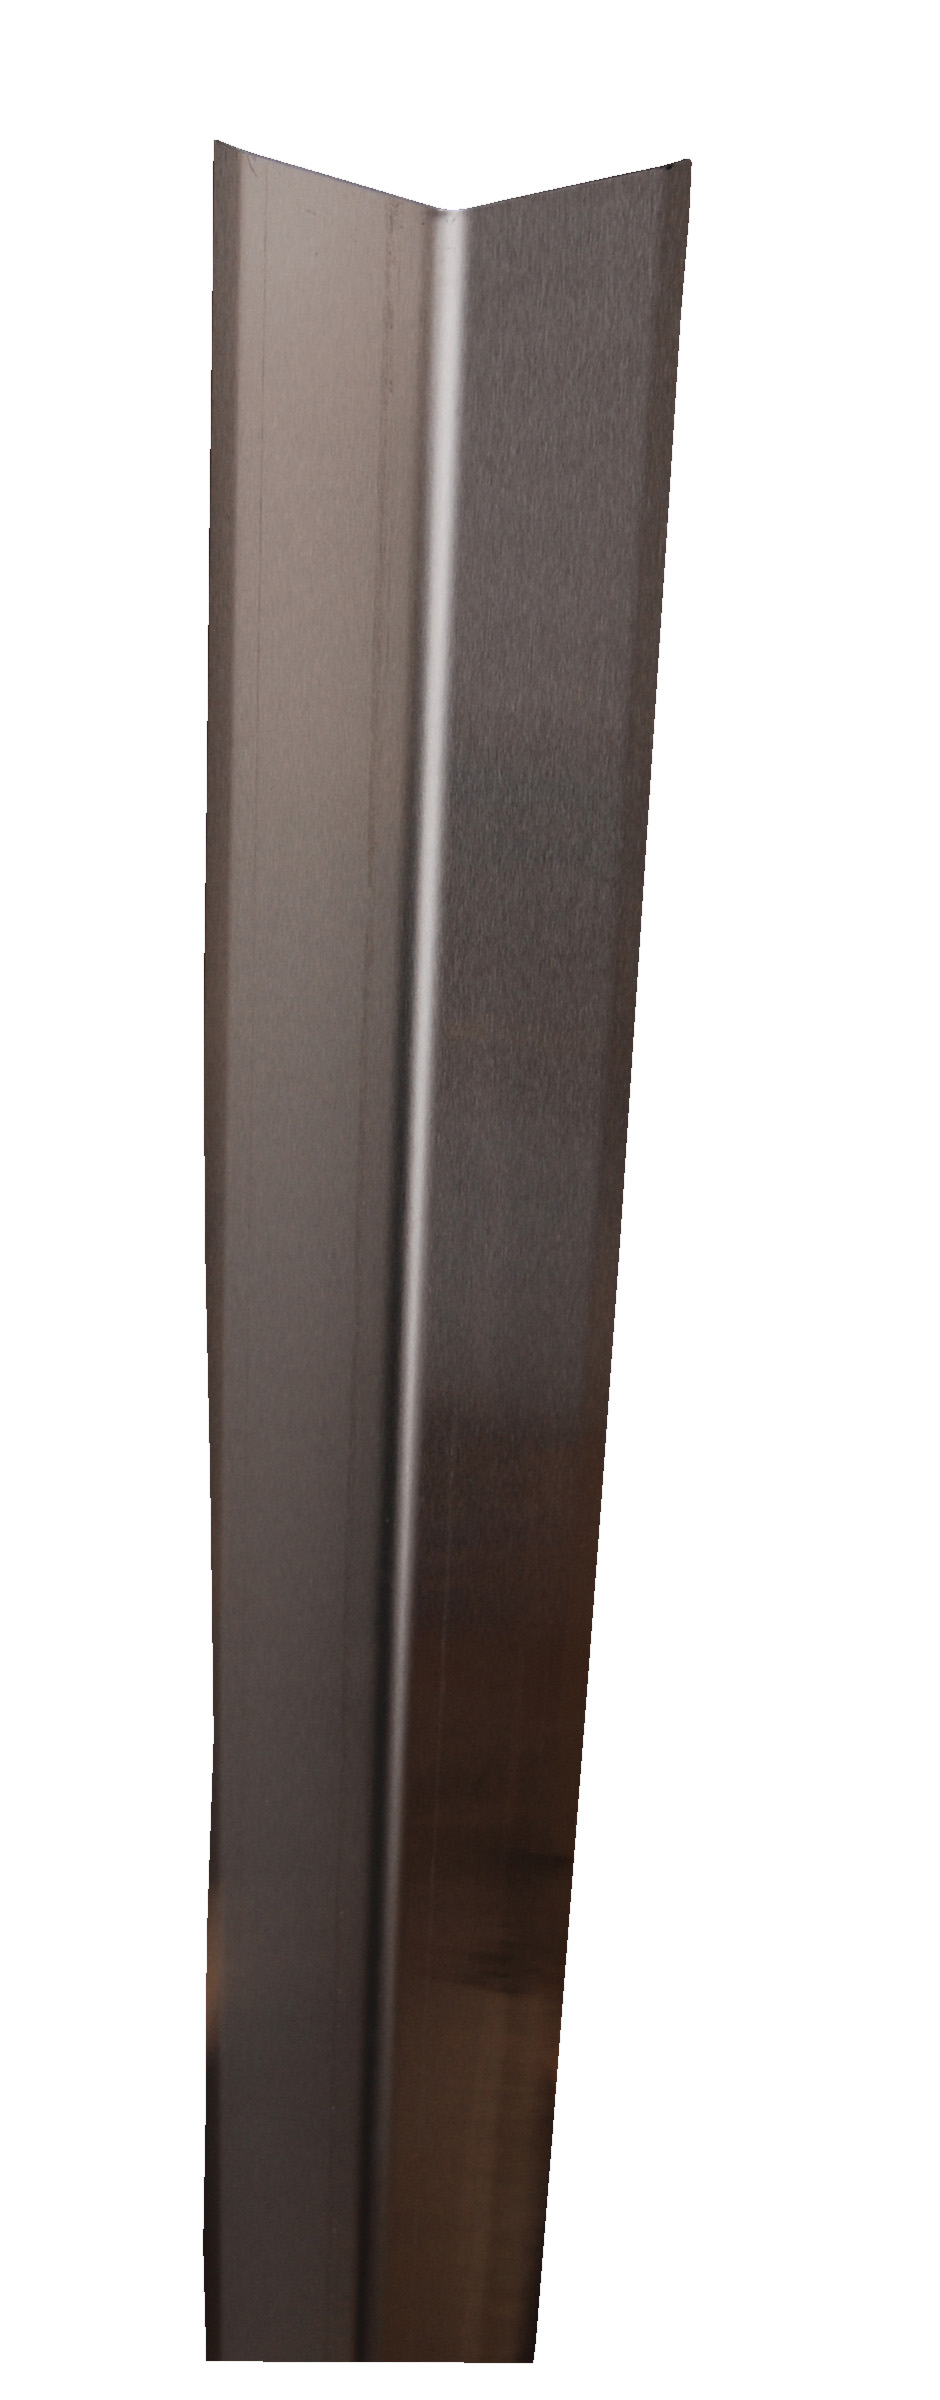 Column protectors safety rack guards material